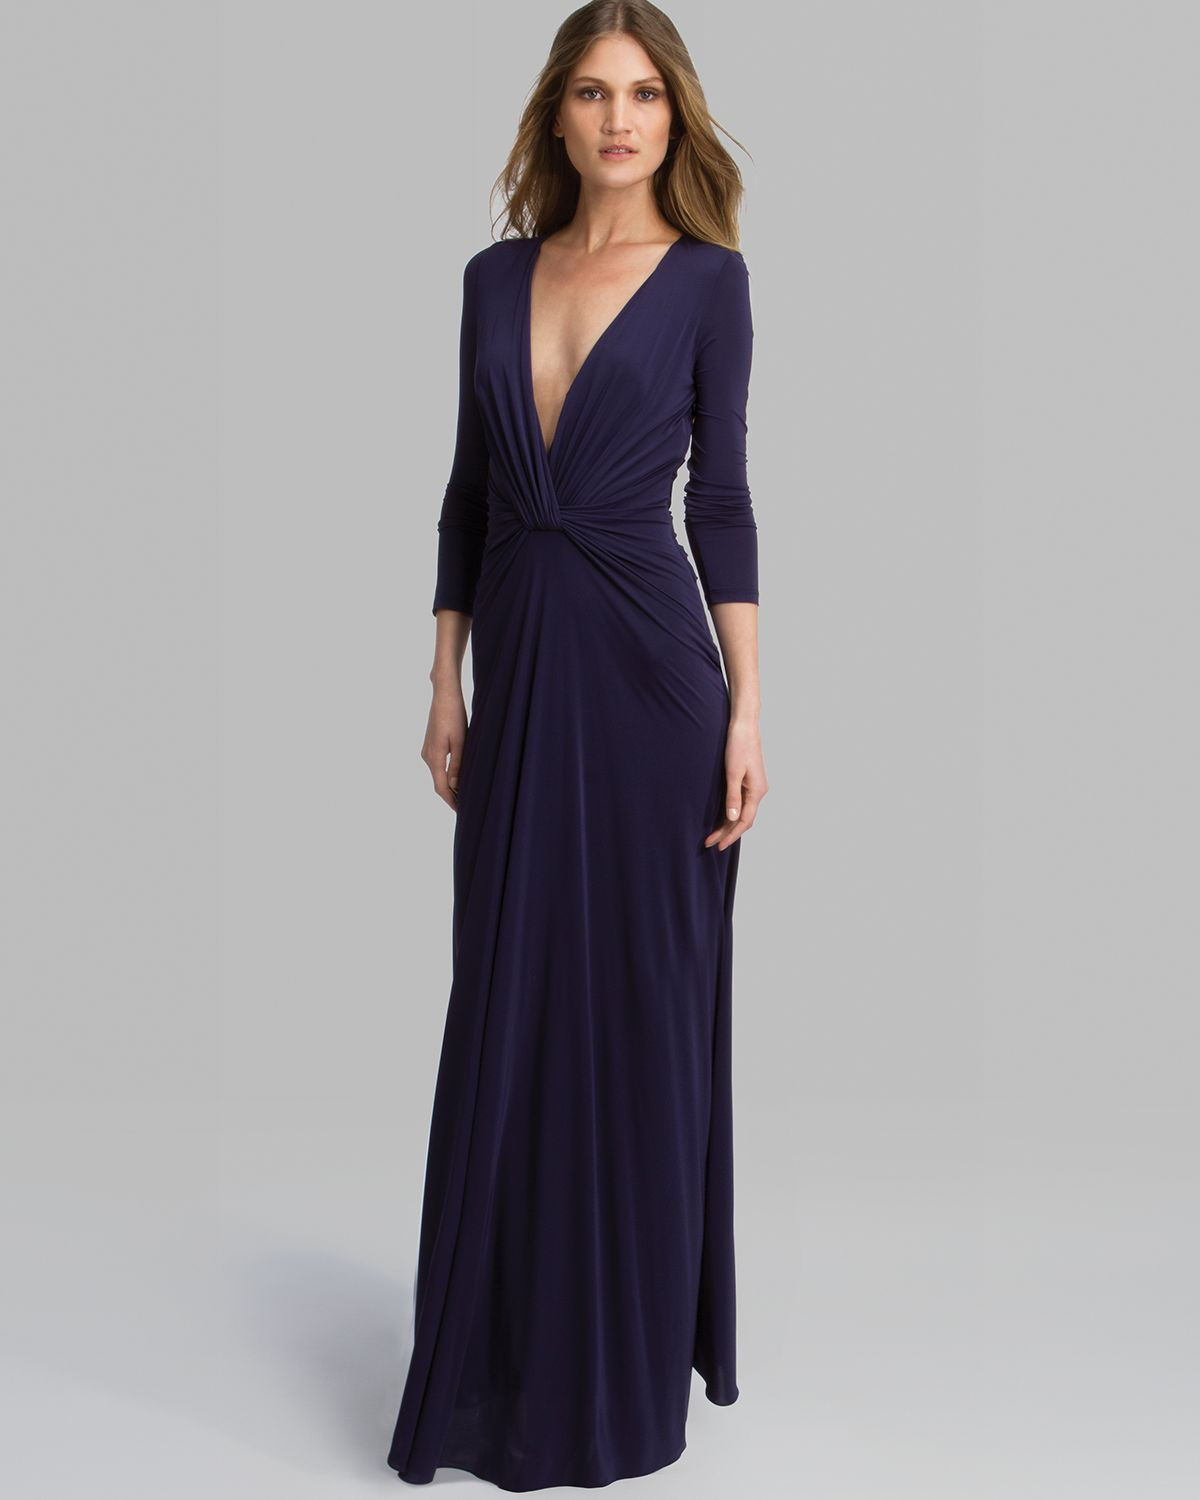 Lyst - Halston Gown Three Quarter Sleeve V Neck Jersey in Blue